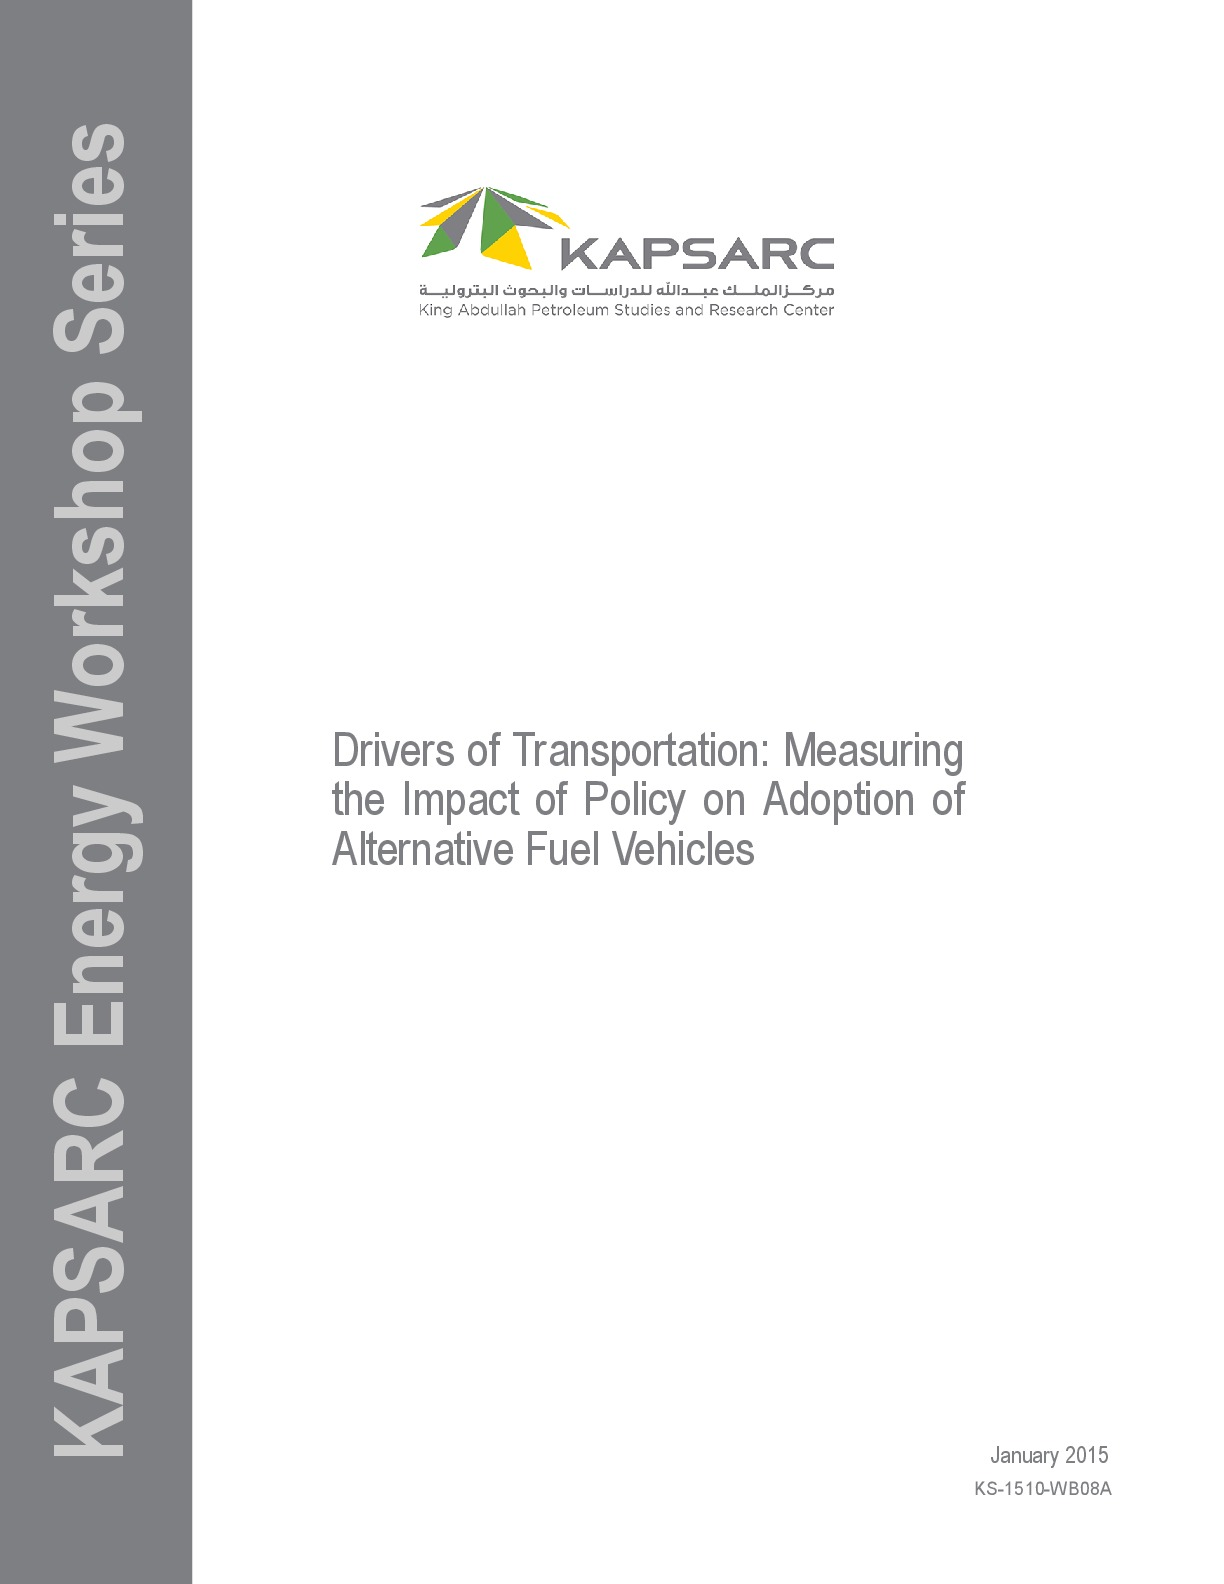 Drivers of Transportation: Measuring the Impact of Policy on Adoption of Alternative Fuel Vehicles